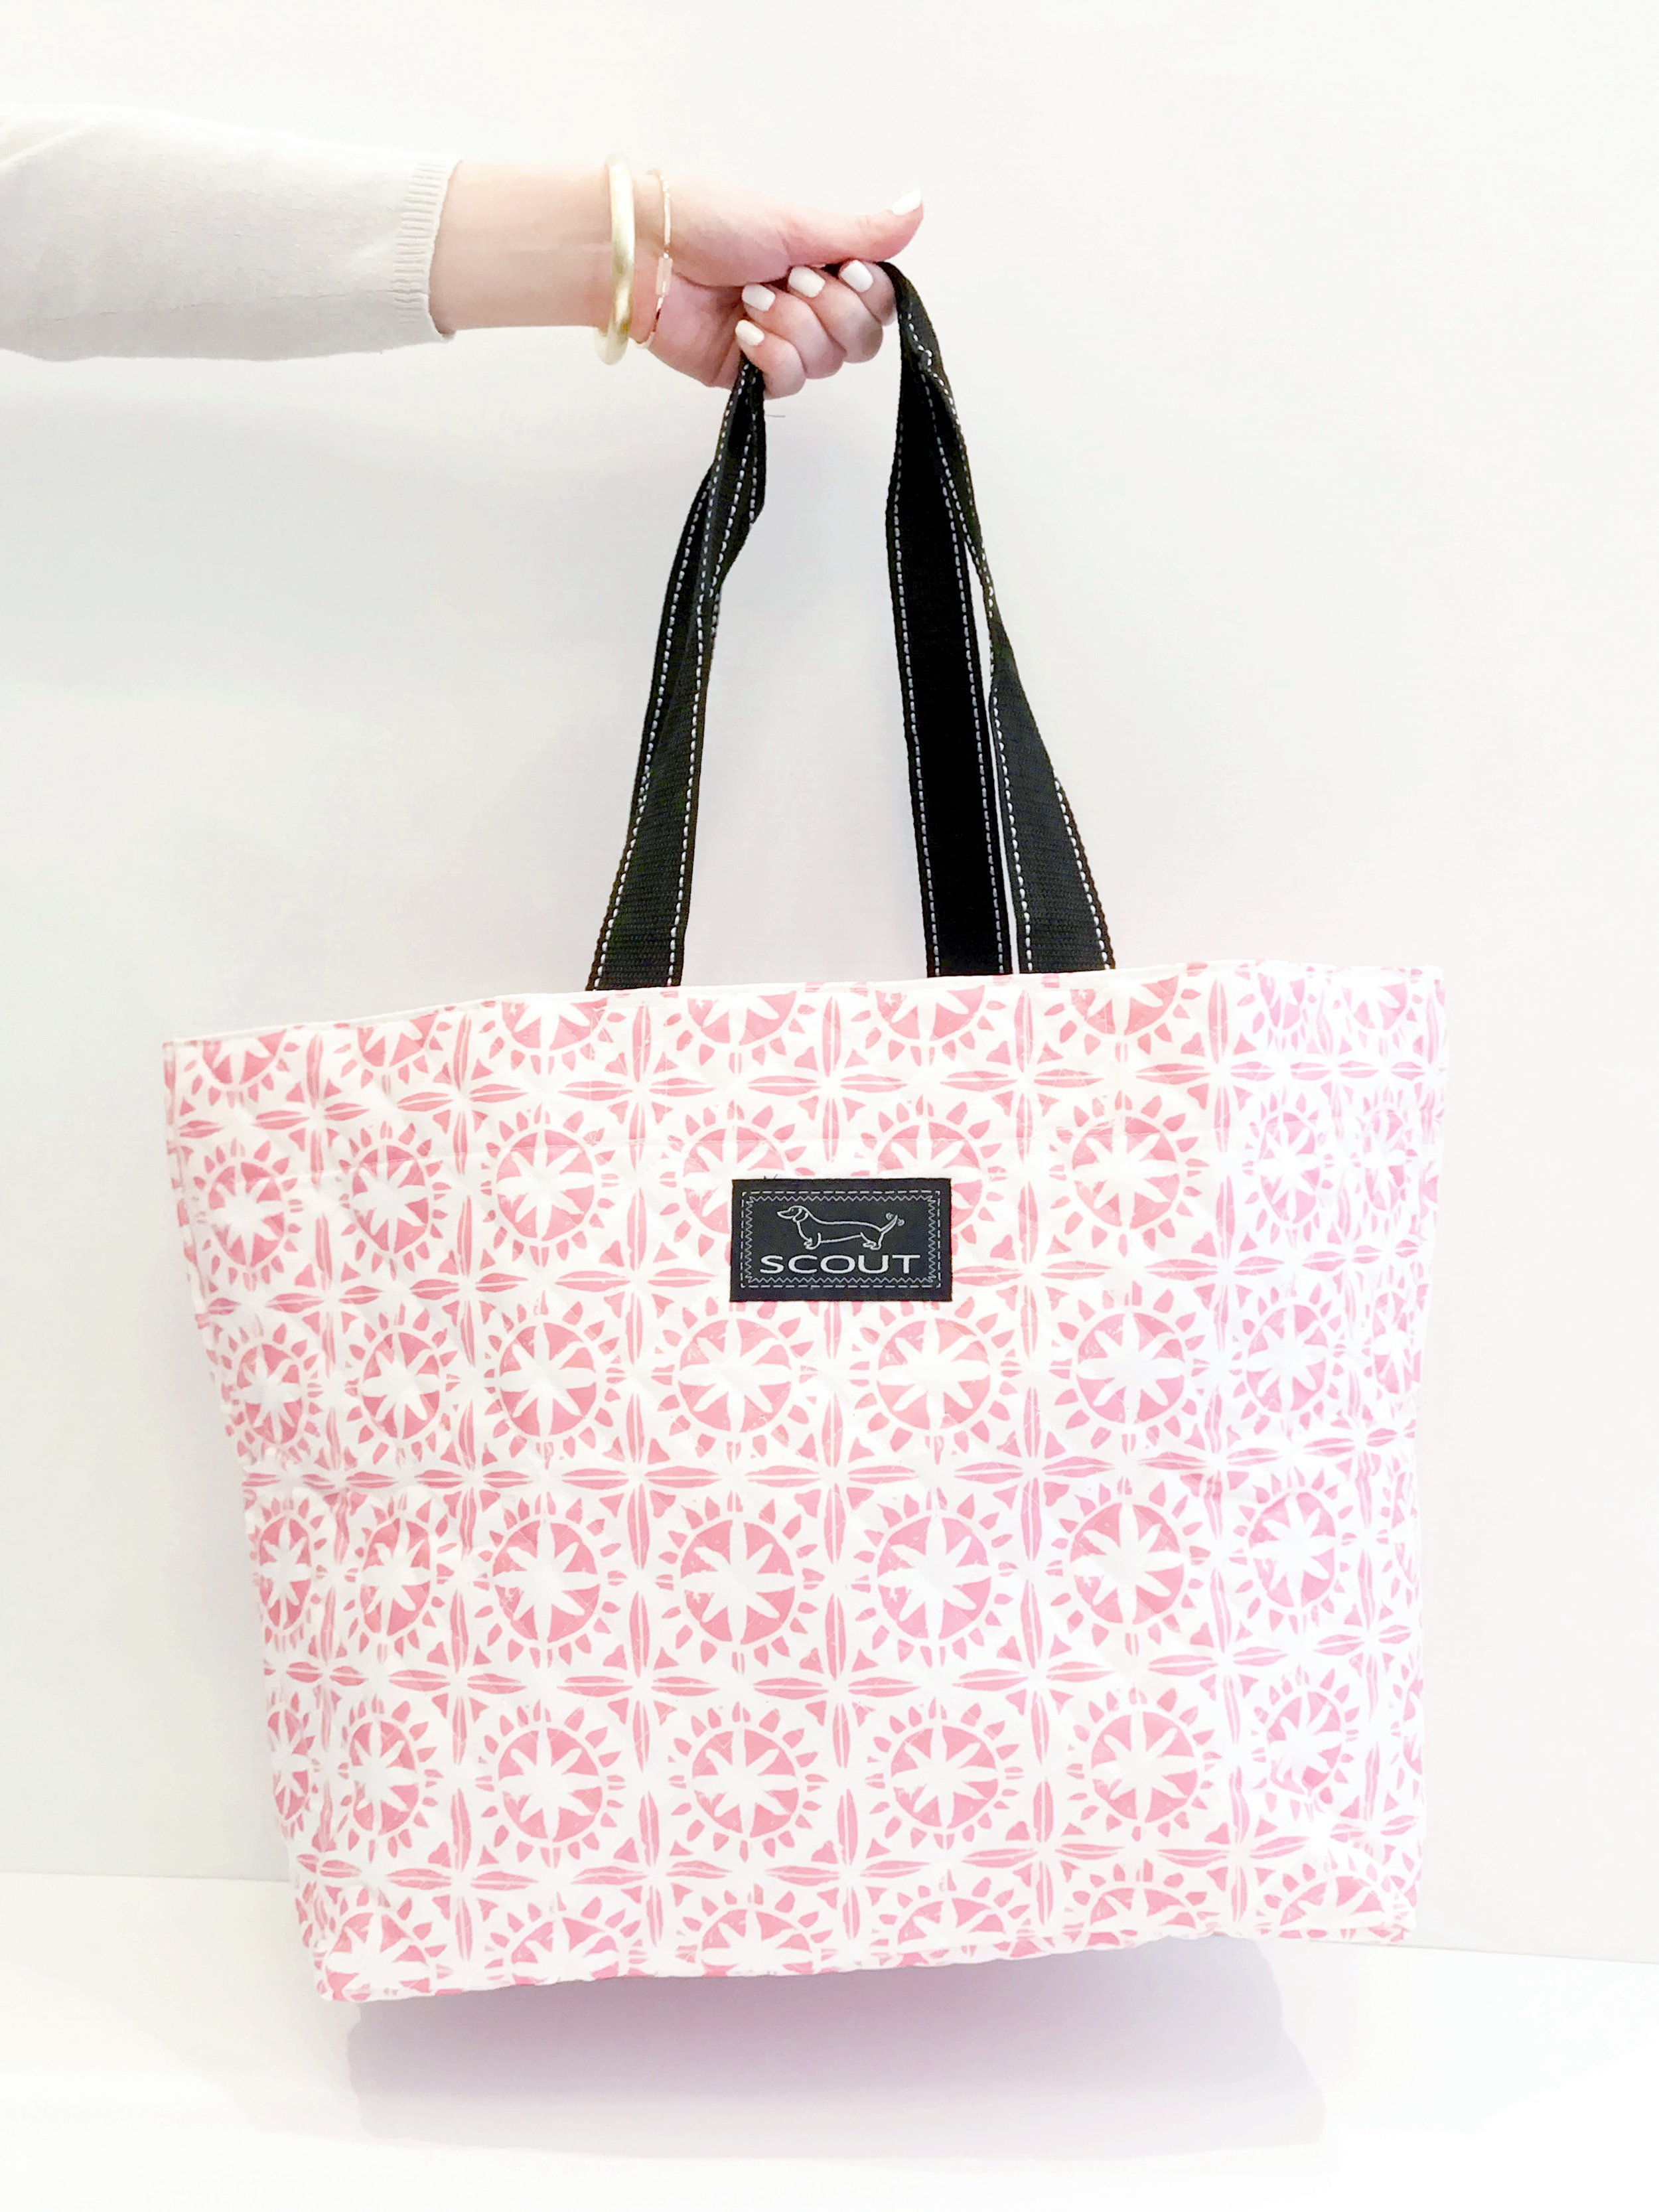 Scout bags have some fun and bright new patterns this Spring for makeup bags, travel bags, insulated lunch boxes, and even wine bags!I especially love the large tote bag - - you can fold it up into a small pouch and then it opens up into a full size tote!Trendy and practical, you definitely can't beat that!